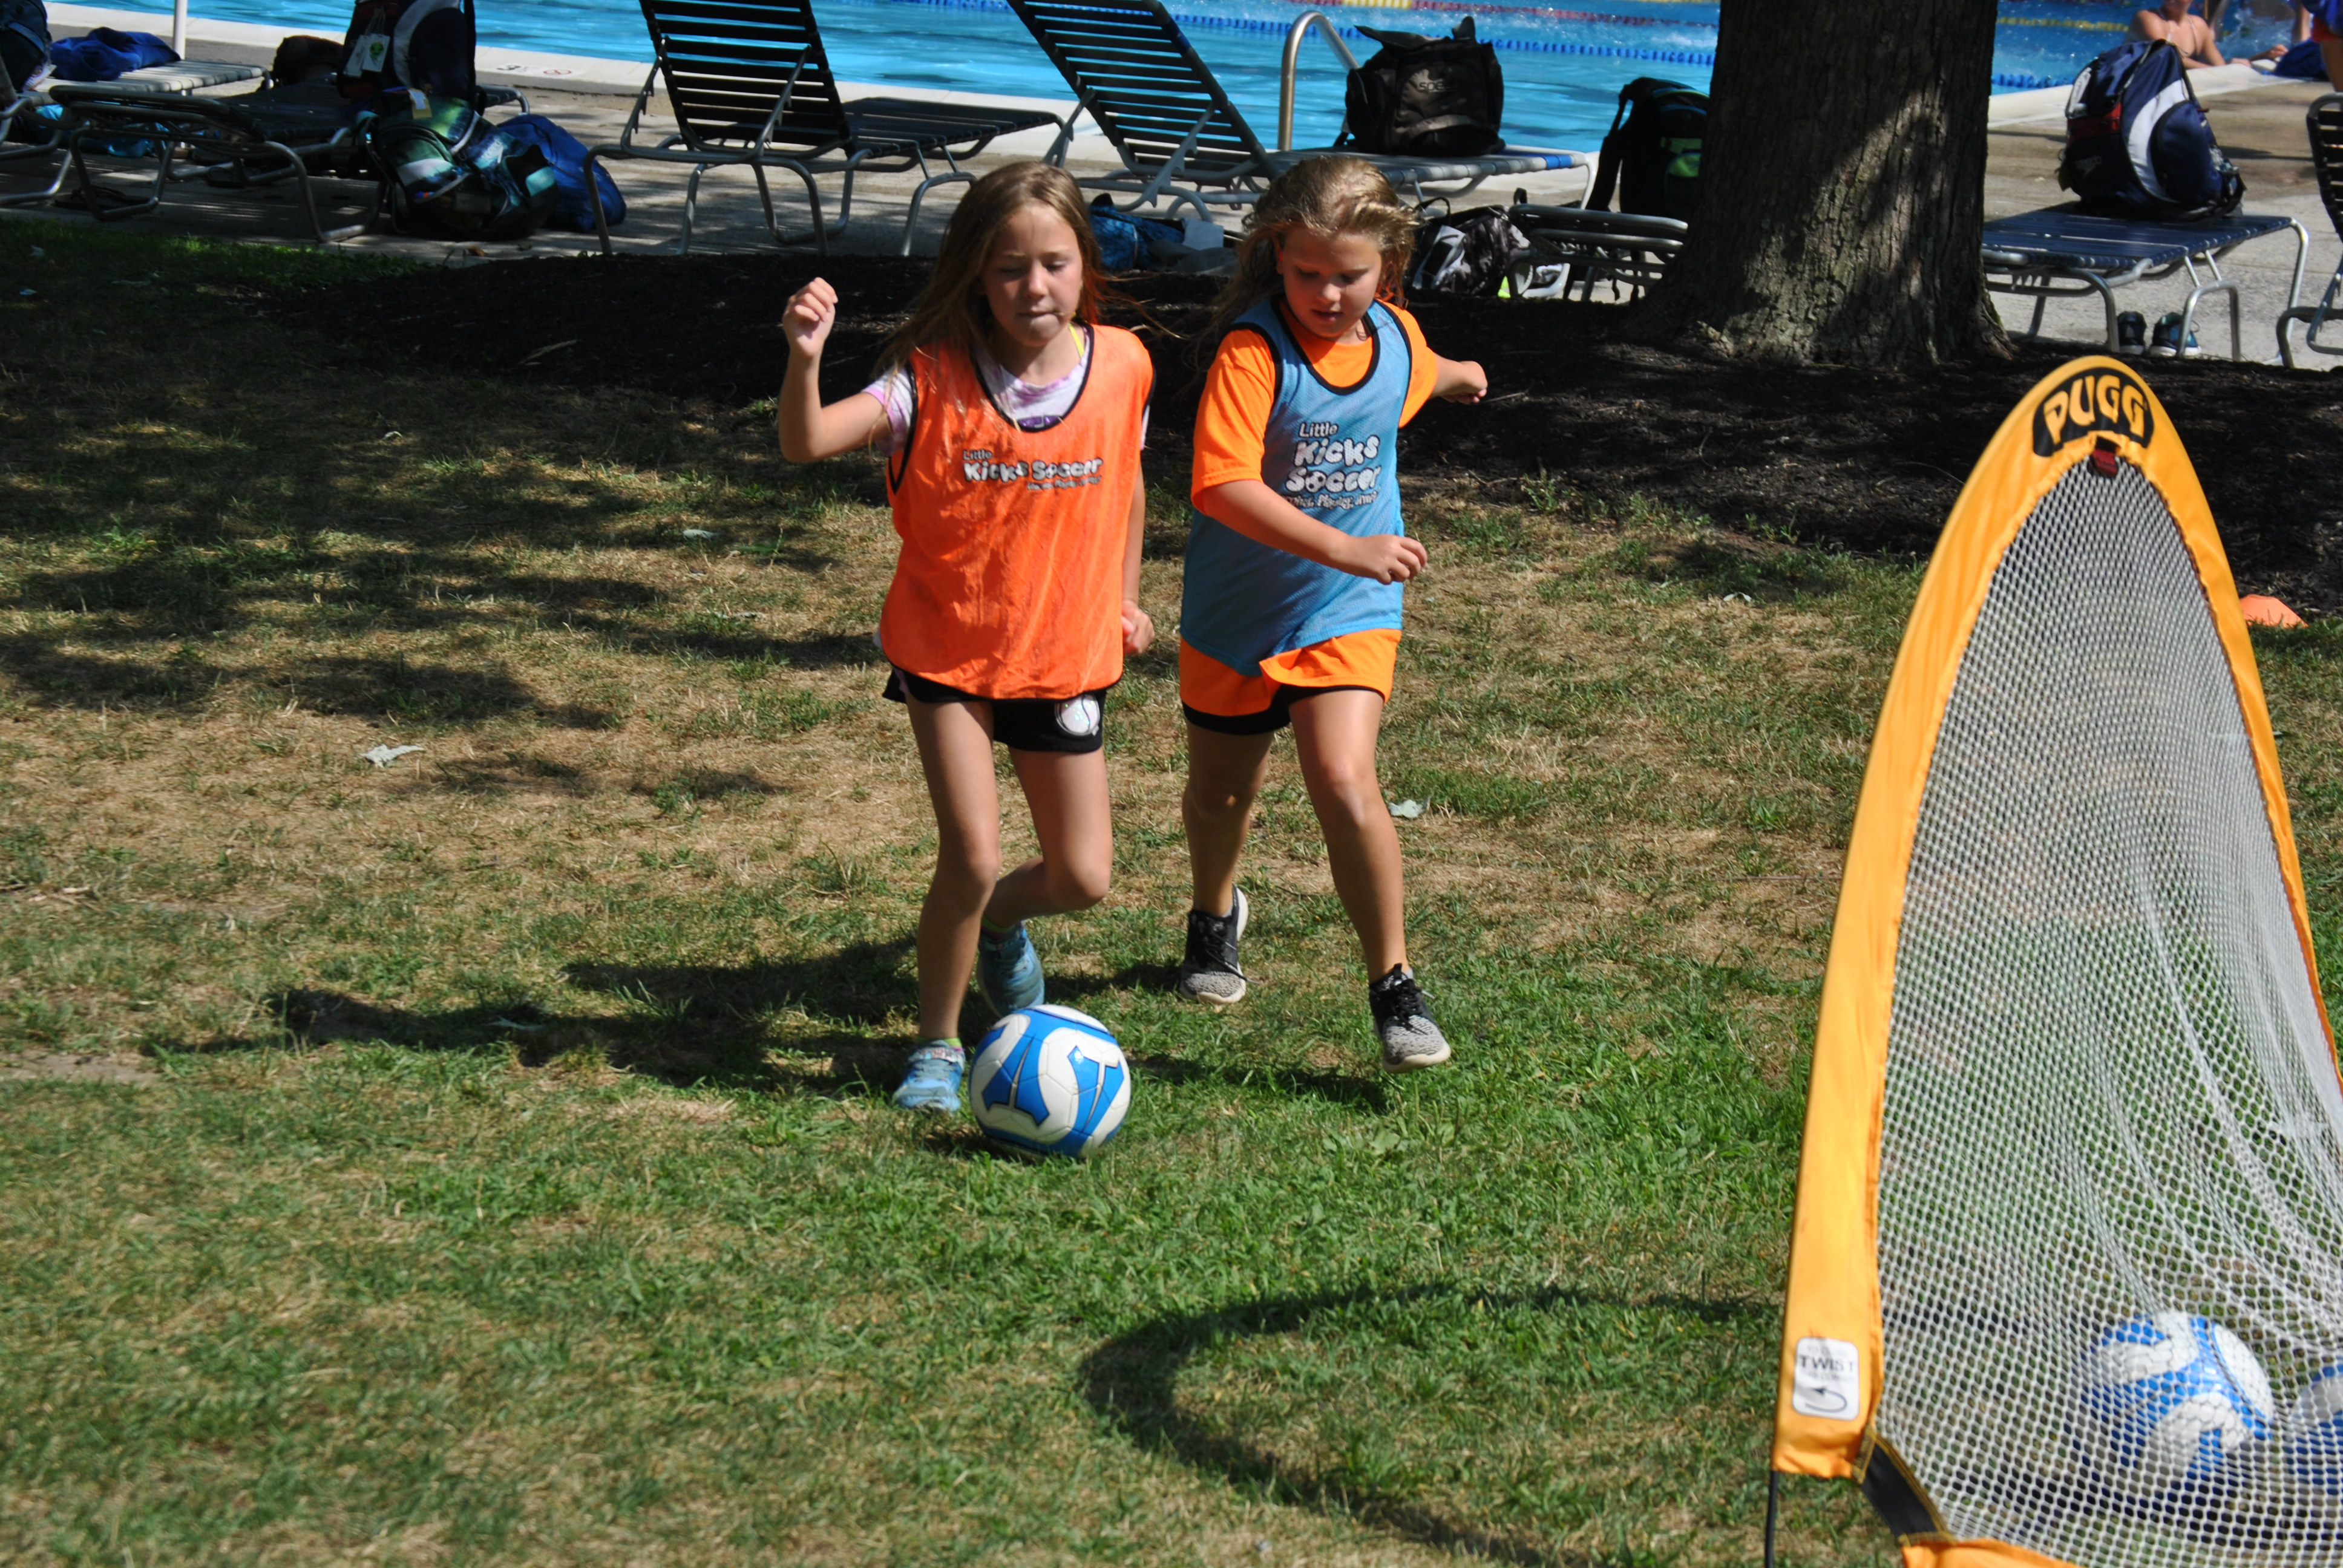 Chartwell's Happy Day Camp Marlton image 30